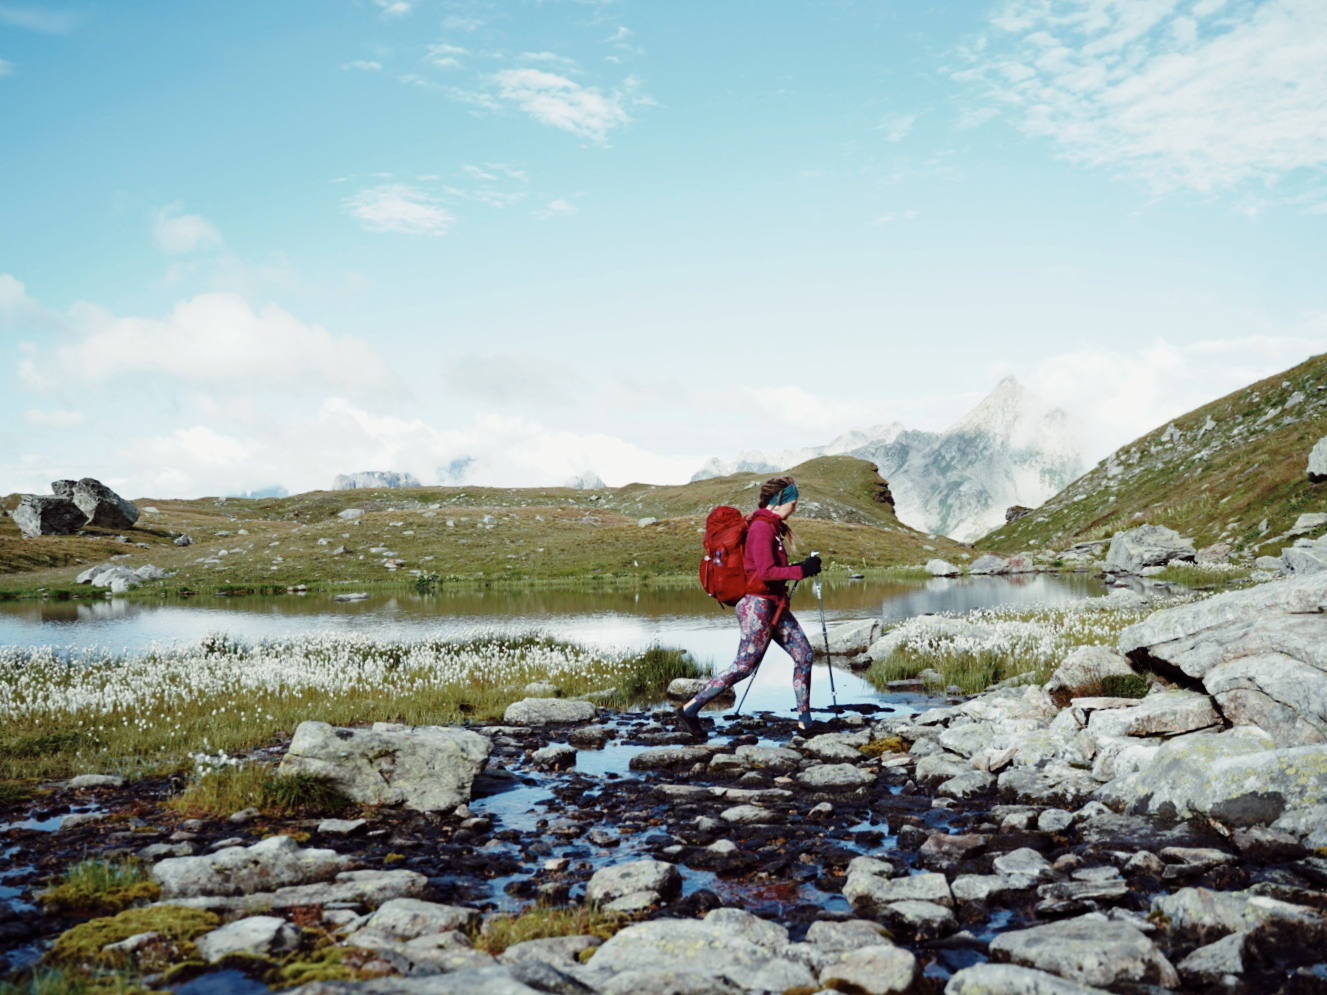 A backpacker crossing a stream in the alps